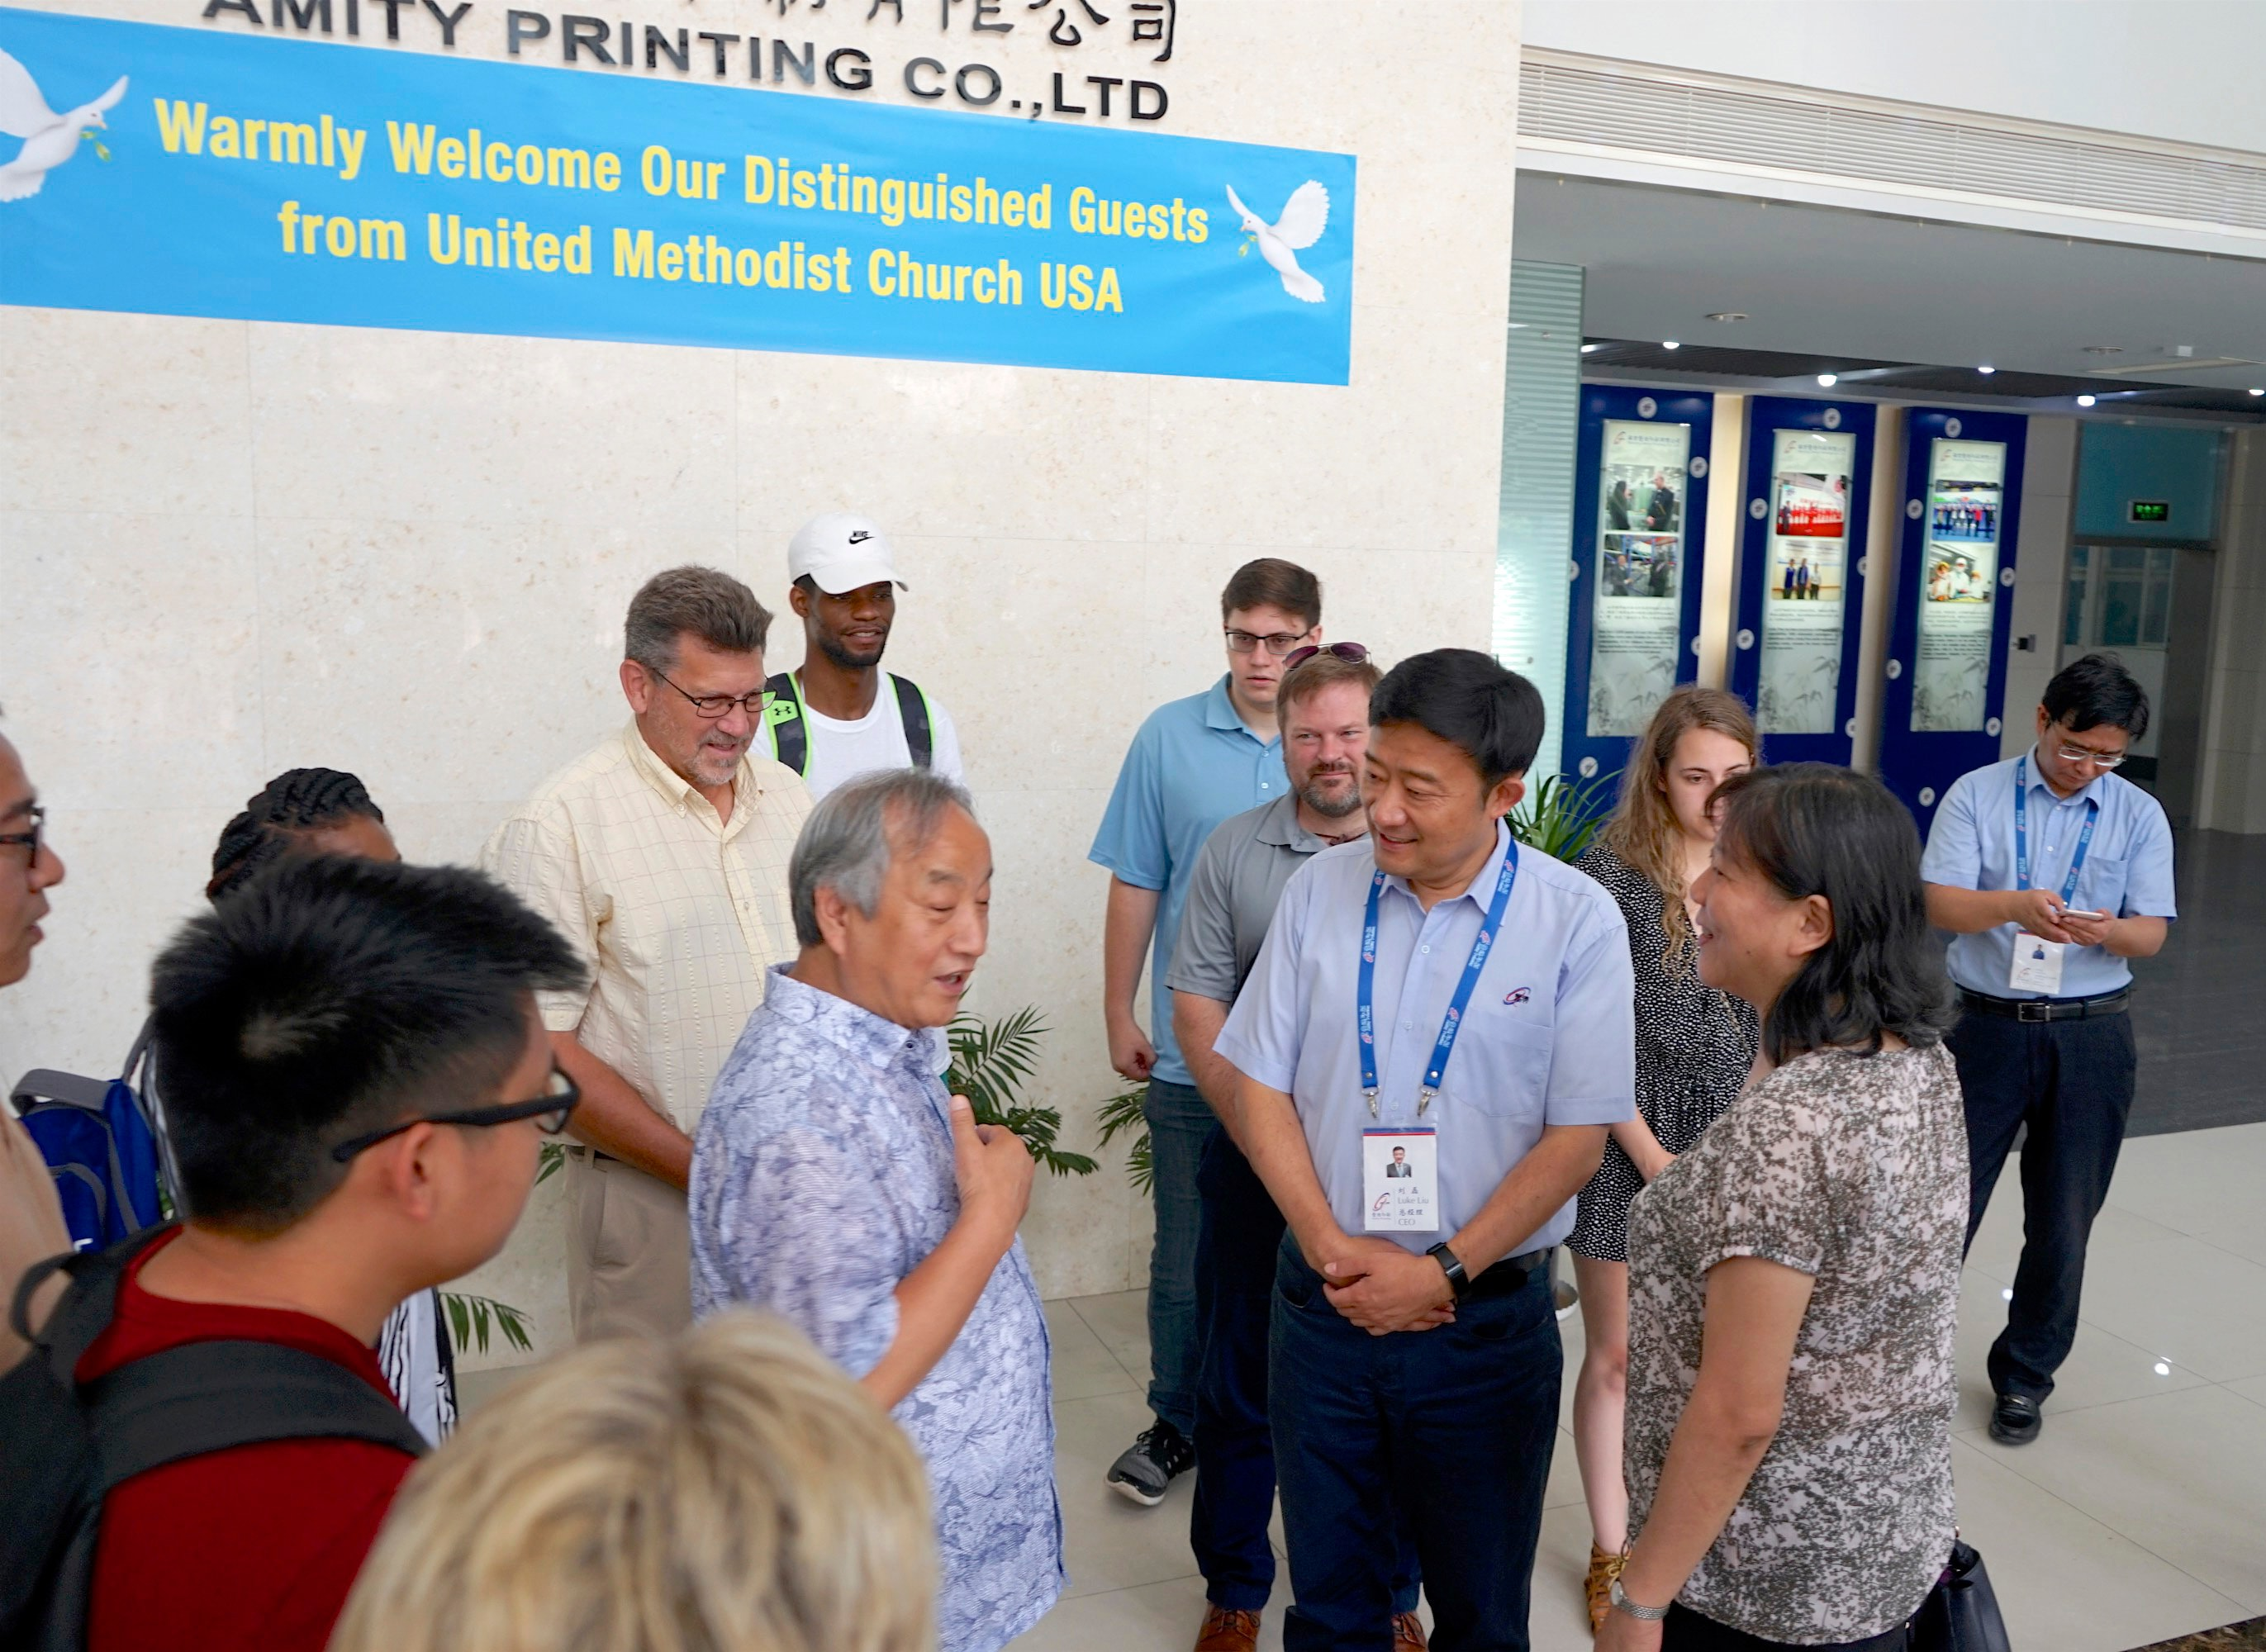 Wisconsin Area Bishop Hee-Soo Jung, center left, talks with officials from the Amity Printing Press in Nanjing, China, during a visit by a joint United Methodist Volunteers in Mission team from the denomination's North Central and Northeastern Jurisdictions. In November, Amity will print its 200 millionth Bible and Jung is among the Christian leaders invited to come and mark the occasion. Photo courtesy of the Rev. David Newhouse.